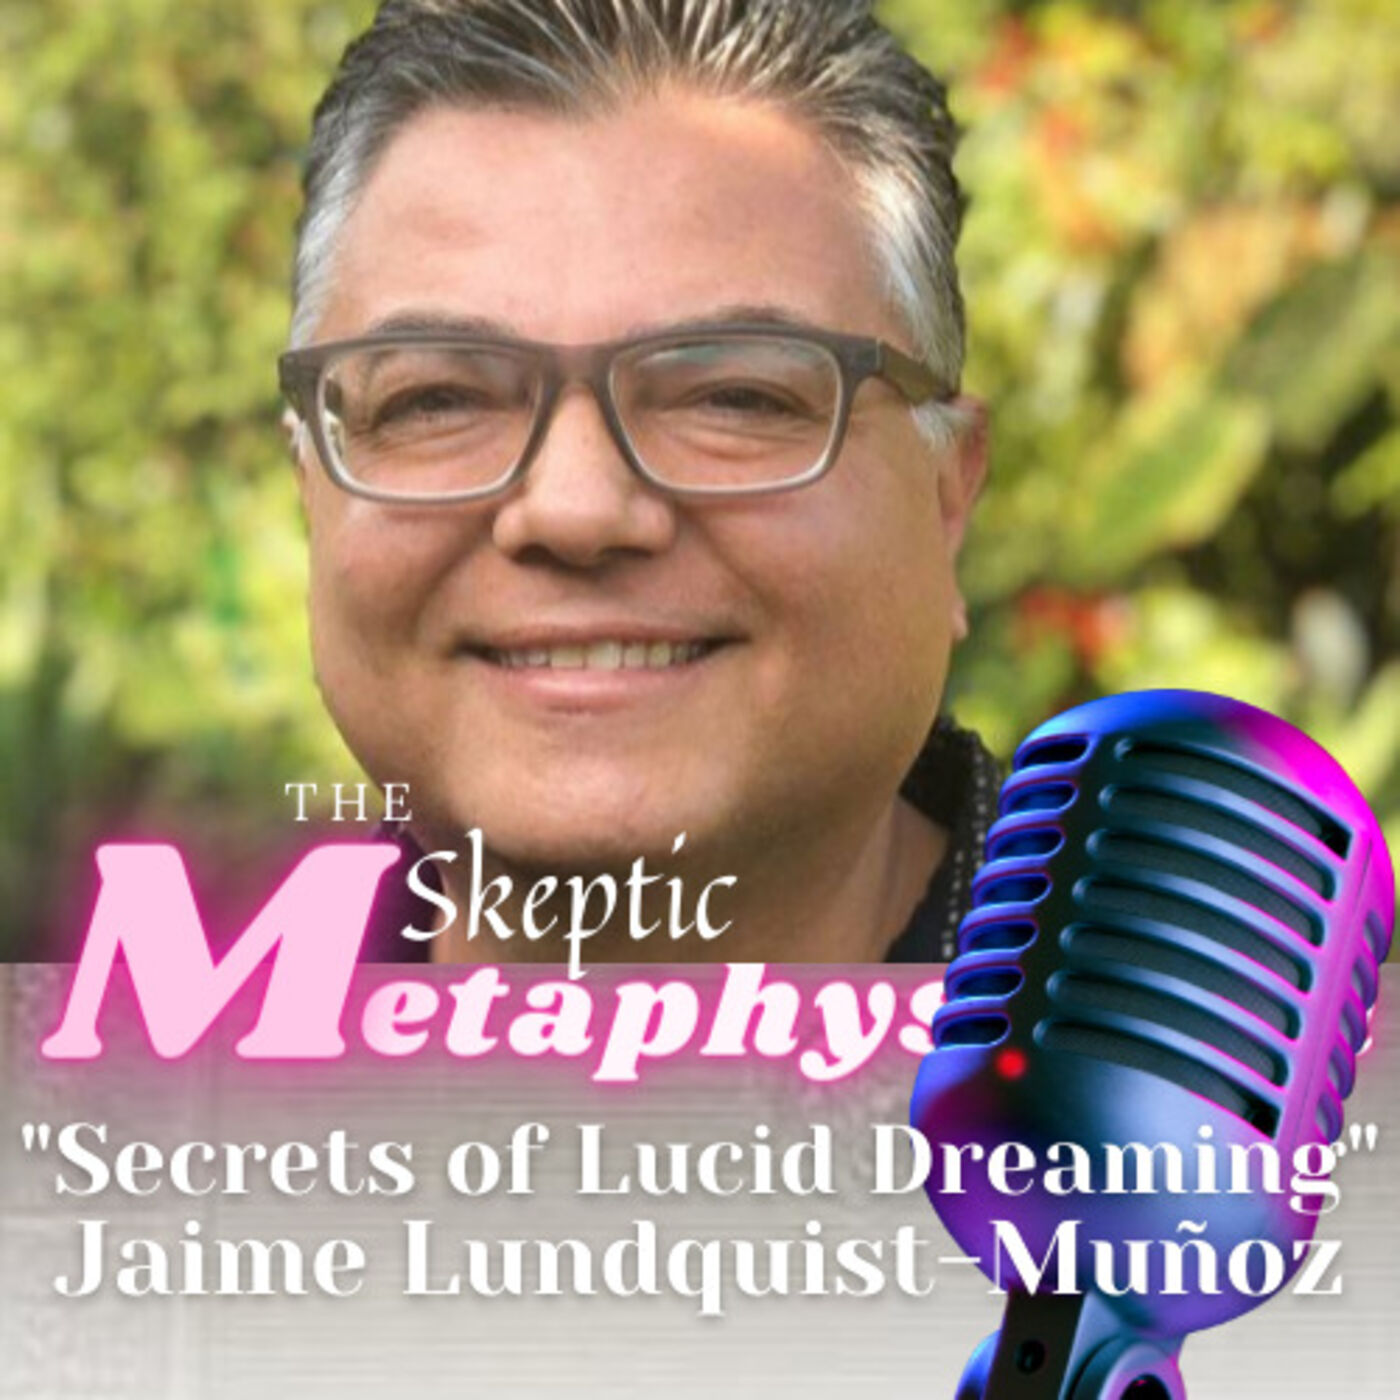 What is Lucid Dreaming with Jaime Lundquist-Muñoz